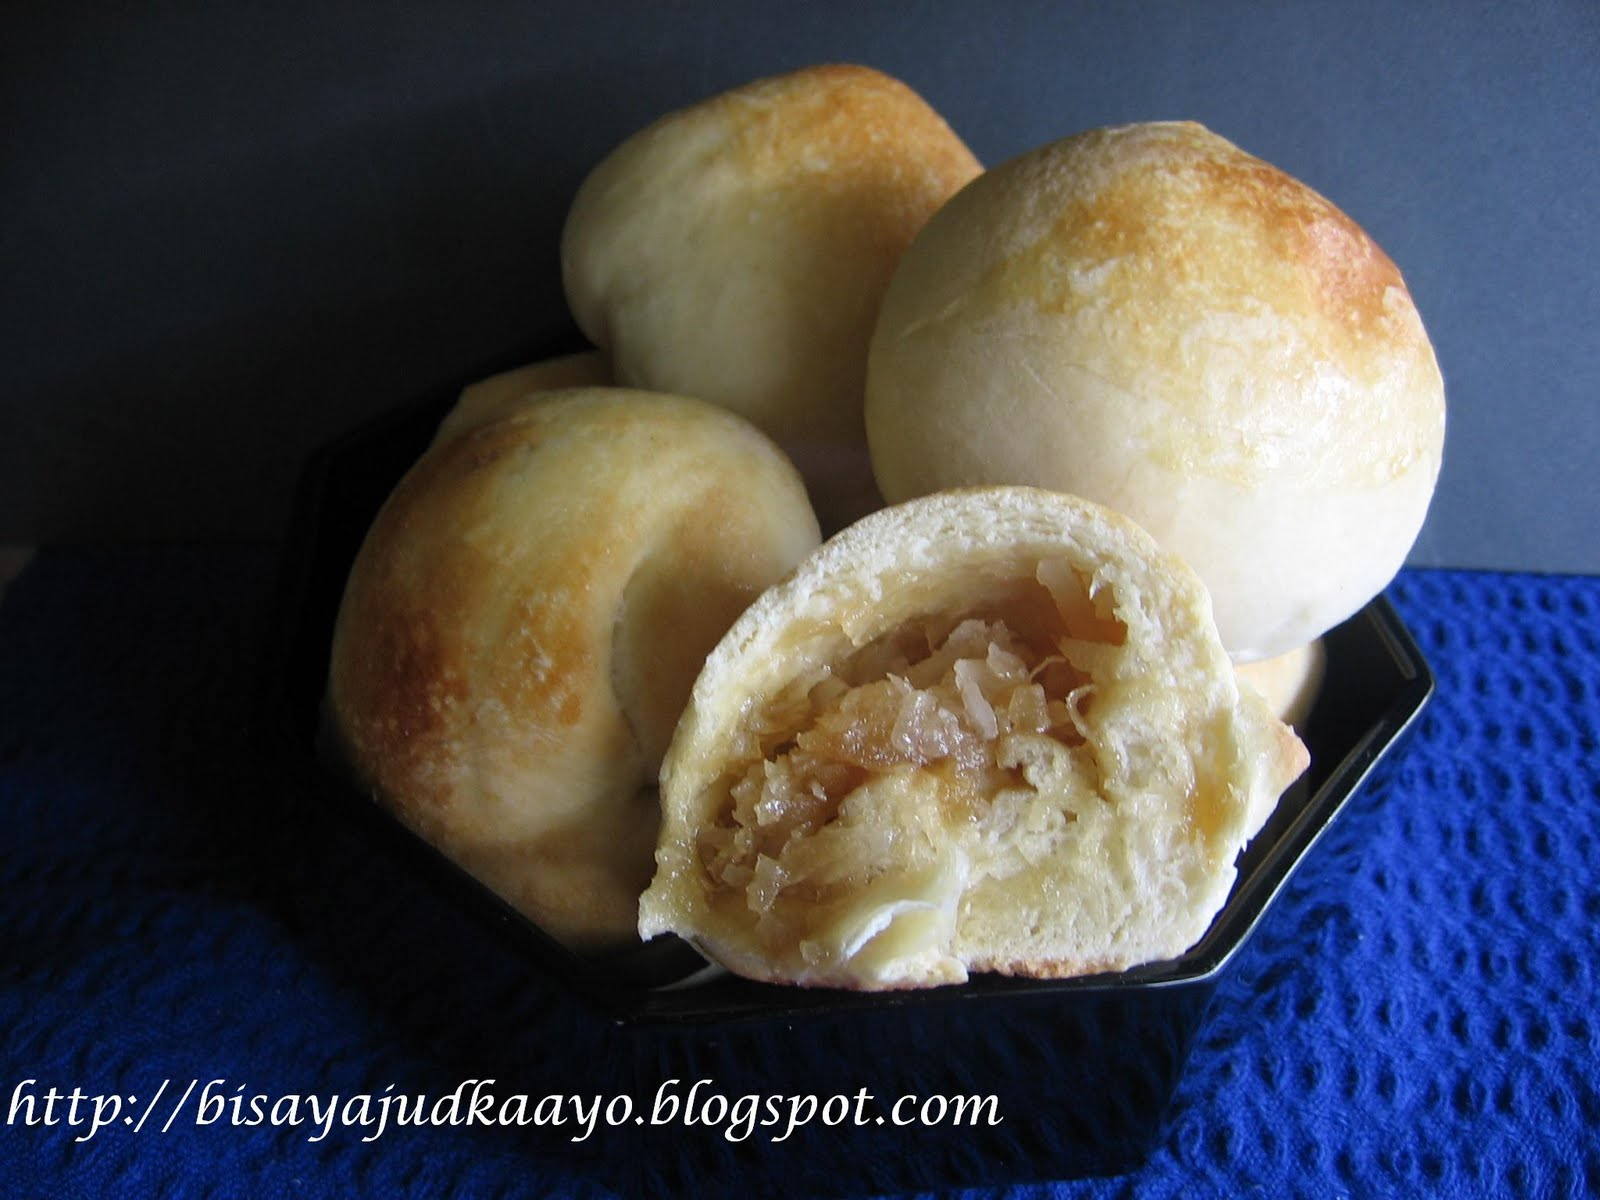 Inato Lang Filipino Cuisine And More Pan De Coco